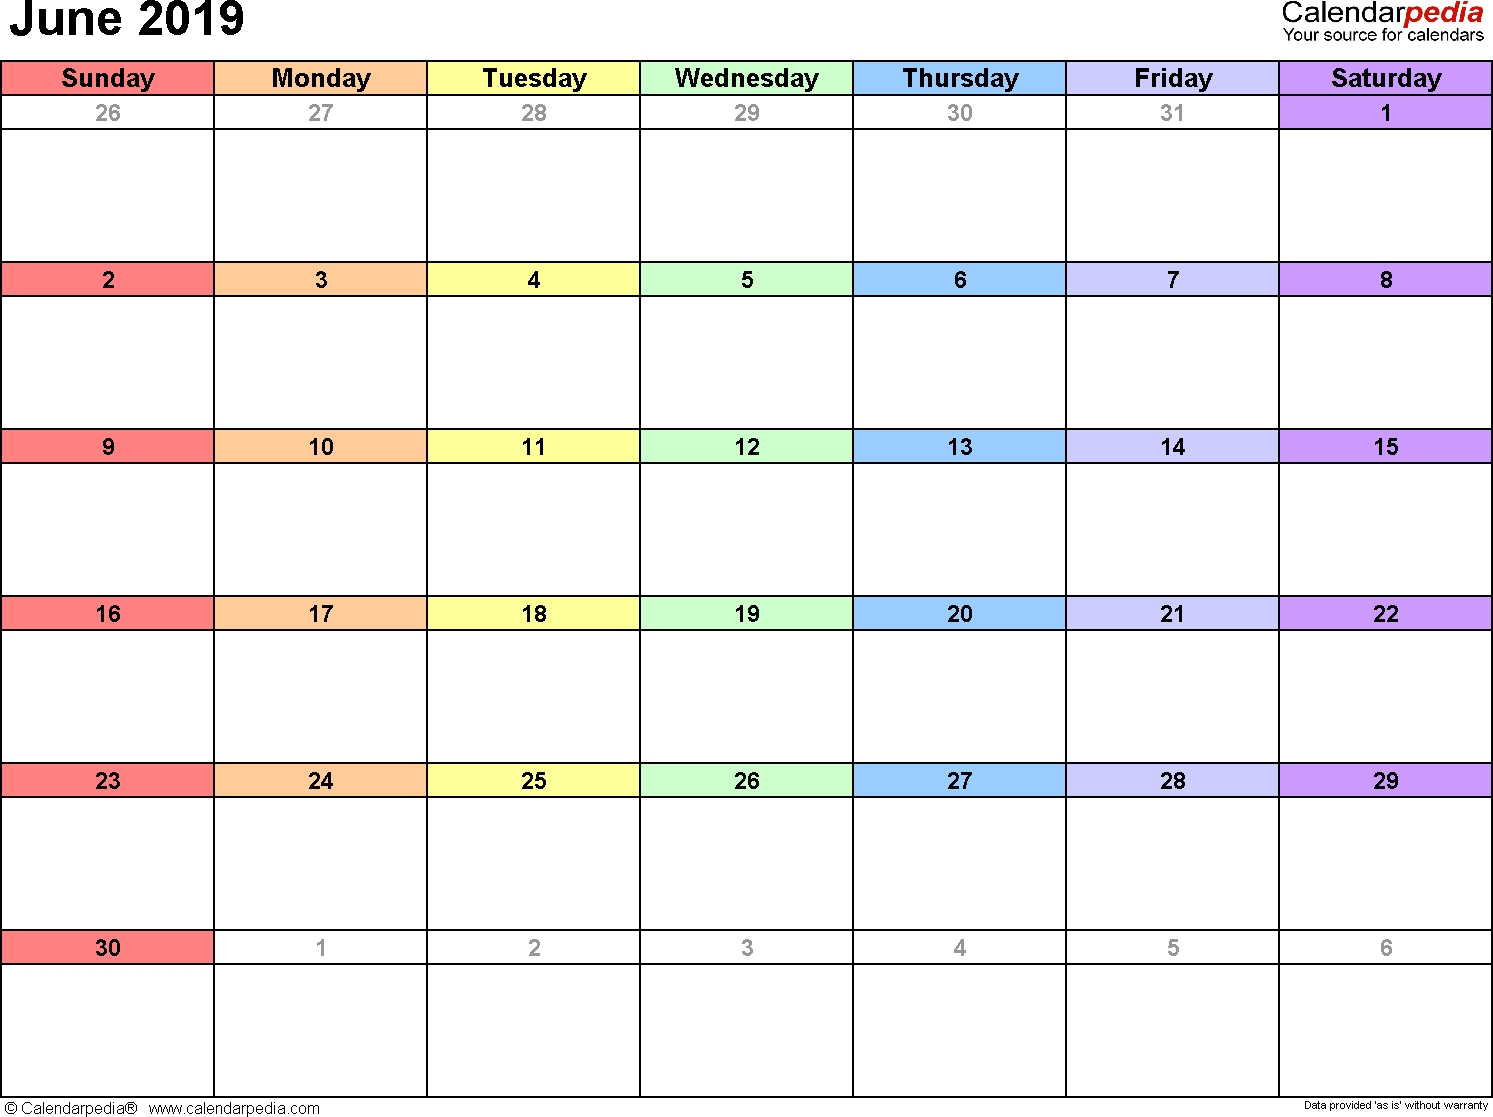 June 2019 Calendars For Word, Excel & Pdf-Monthly Schdule For June